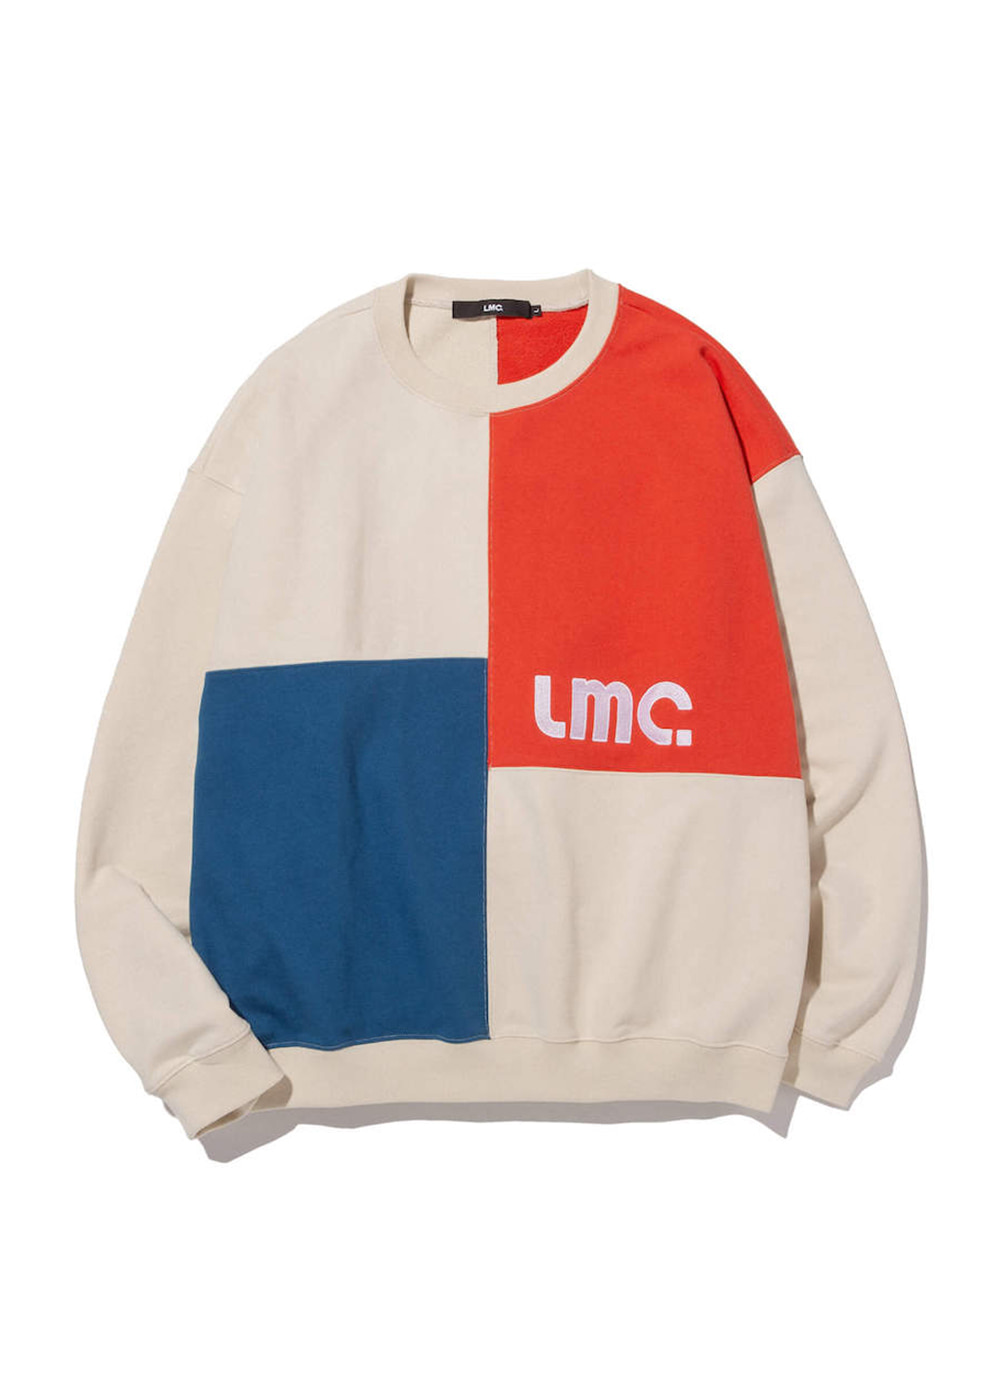 LMC BLOCK SWEATSHIRT cream